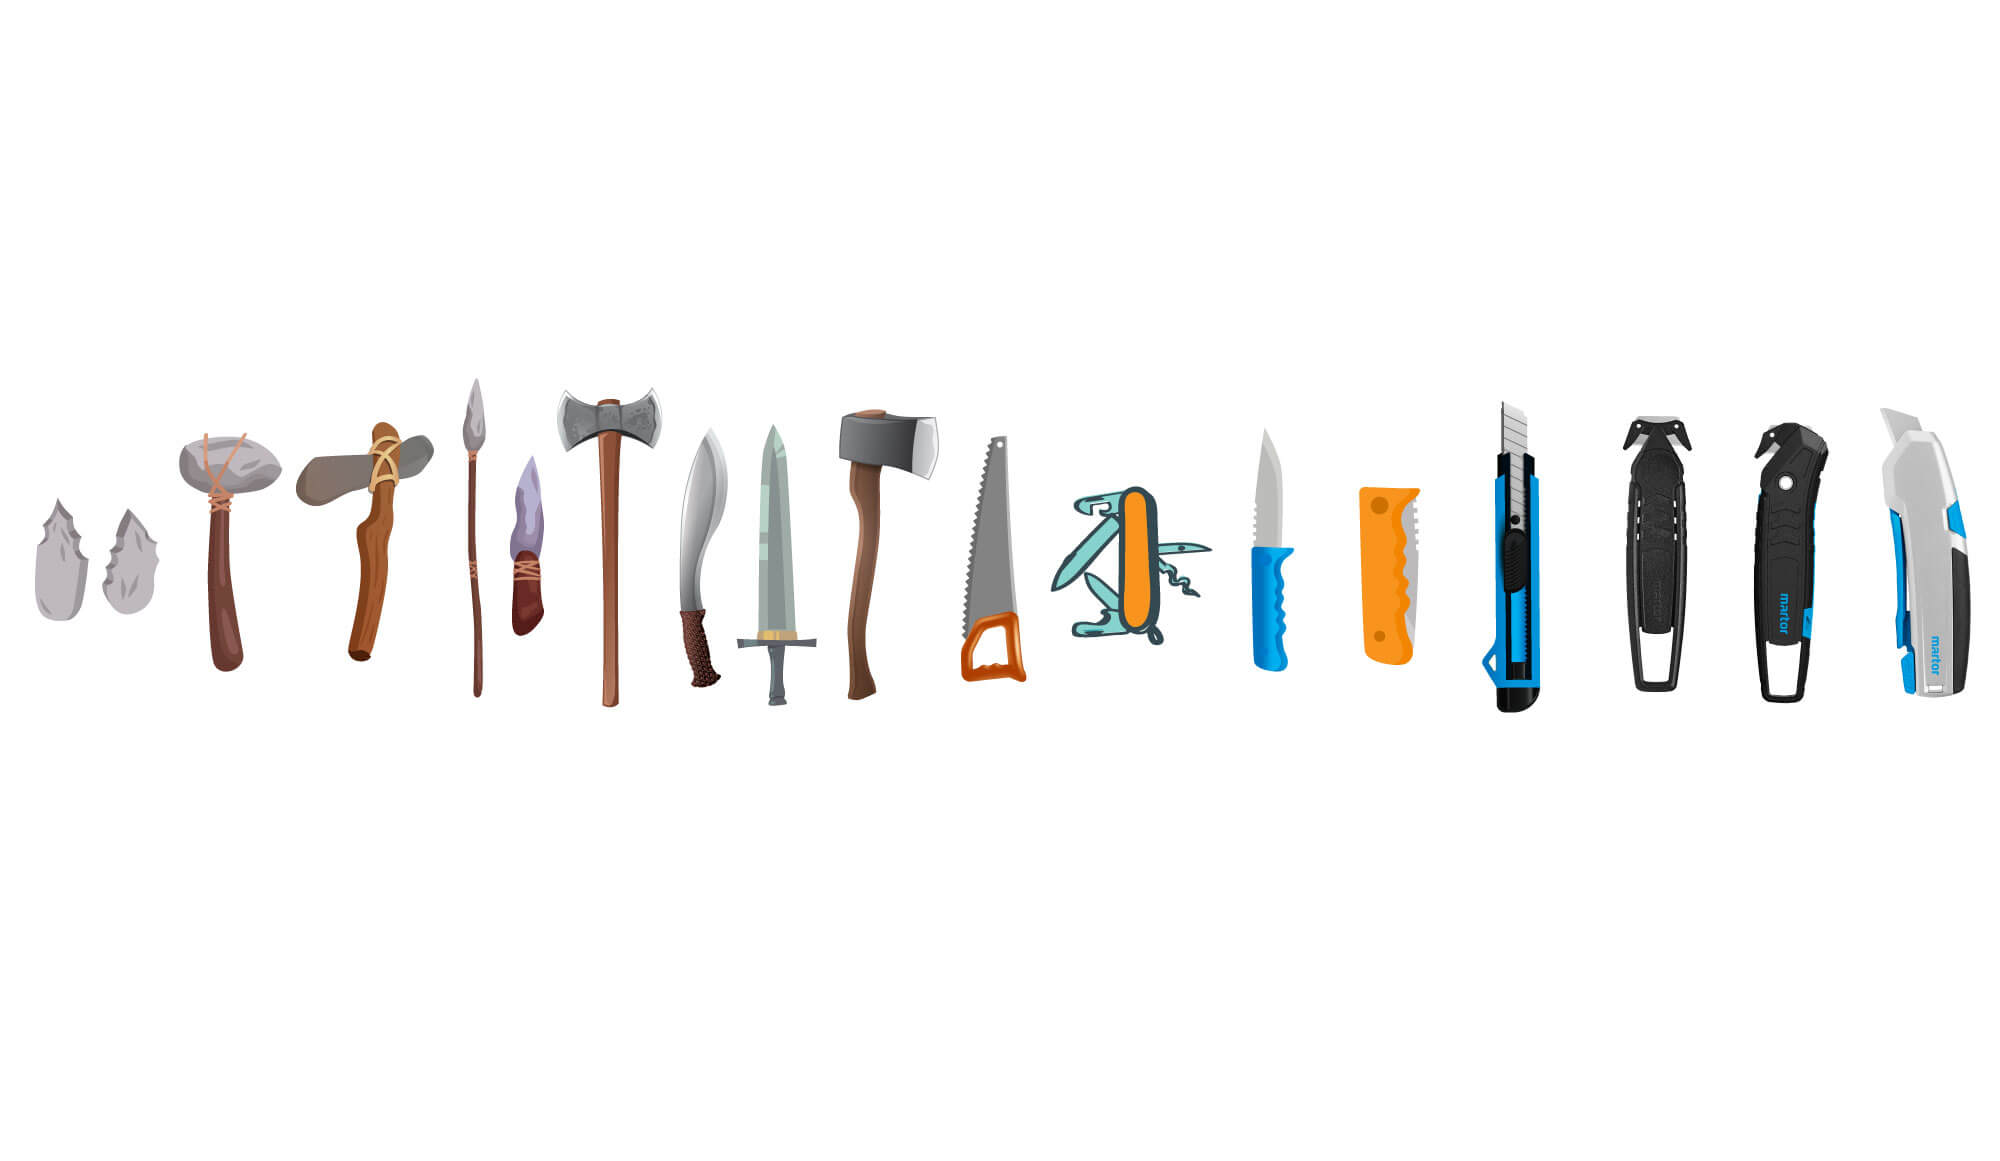 Journey of safety cutters knives till 21st century cutting tools by saurya safety